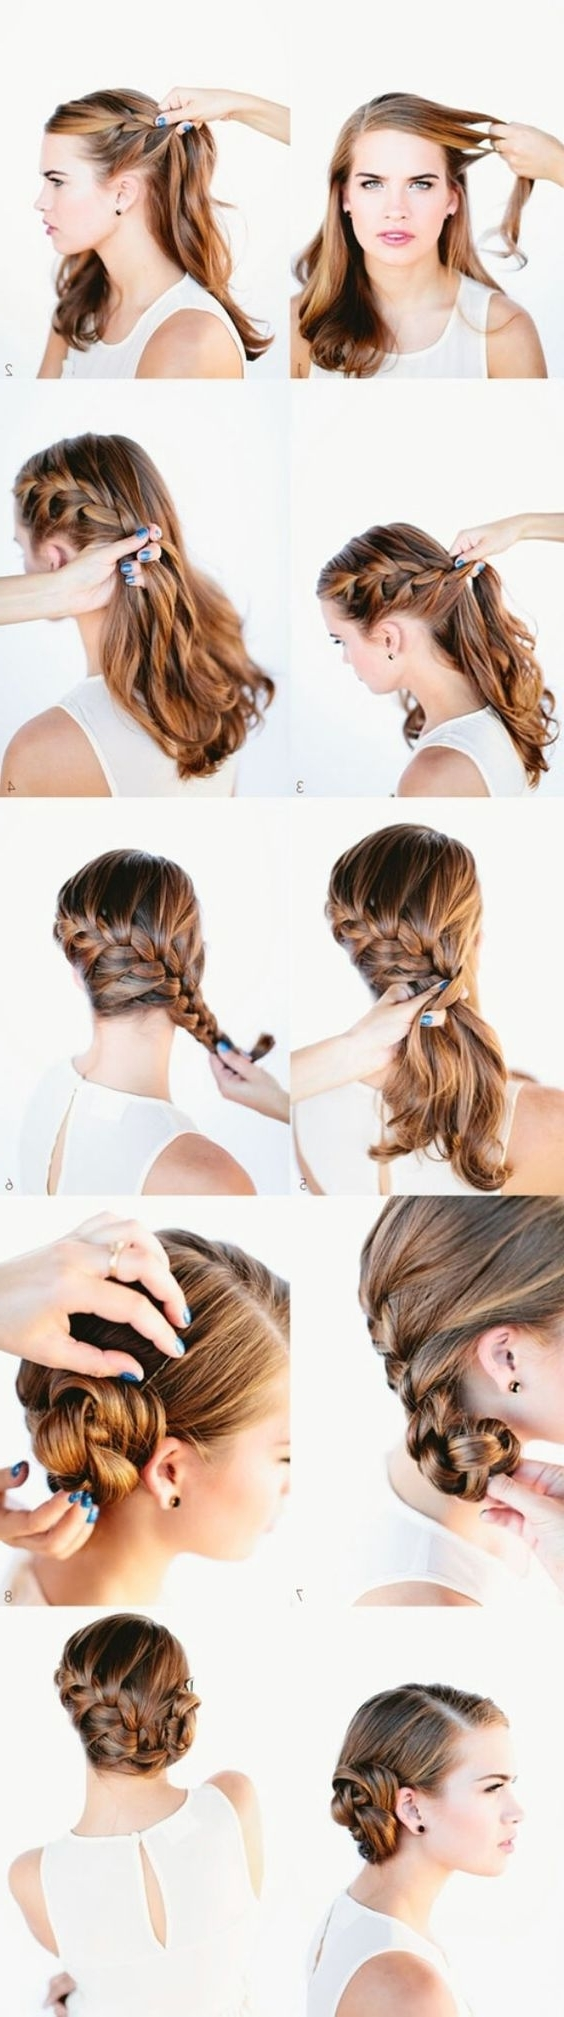 Most Current Pair Of Braids With Wrapped Ponytail Pertaining To 21 Tutorials For Styling Wrap Around Braids – Pretty Designs (View 9 of 15)